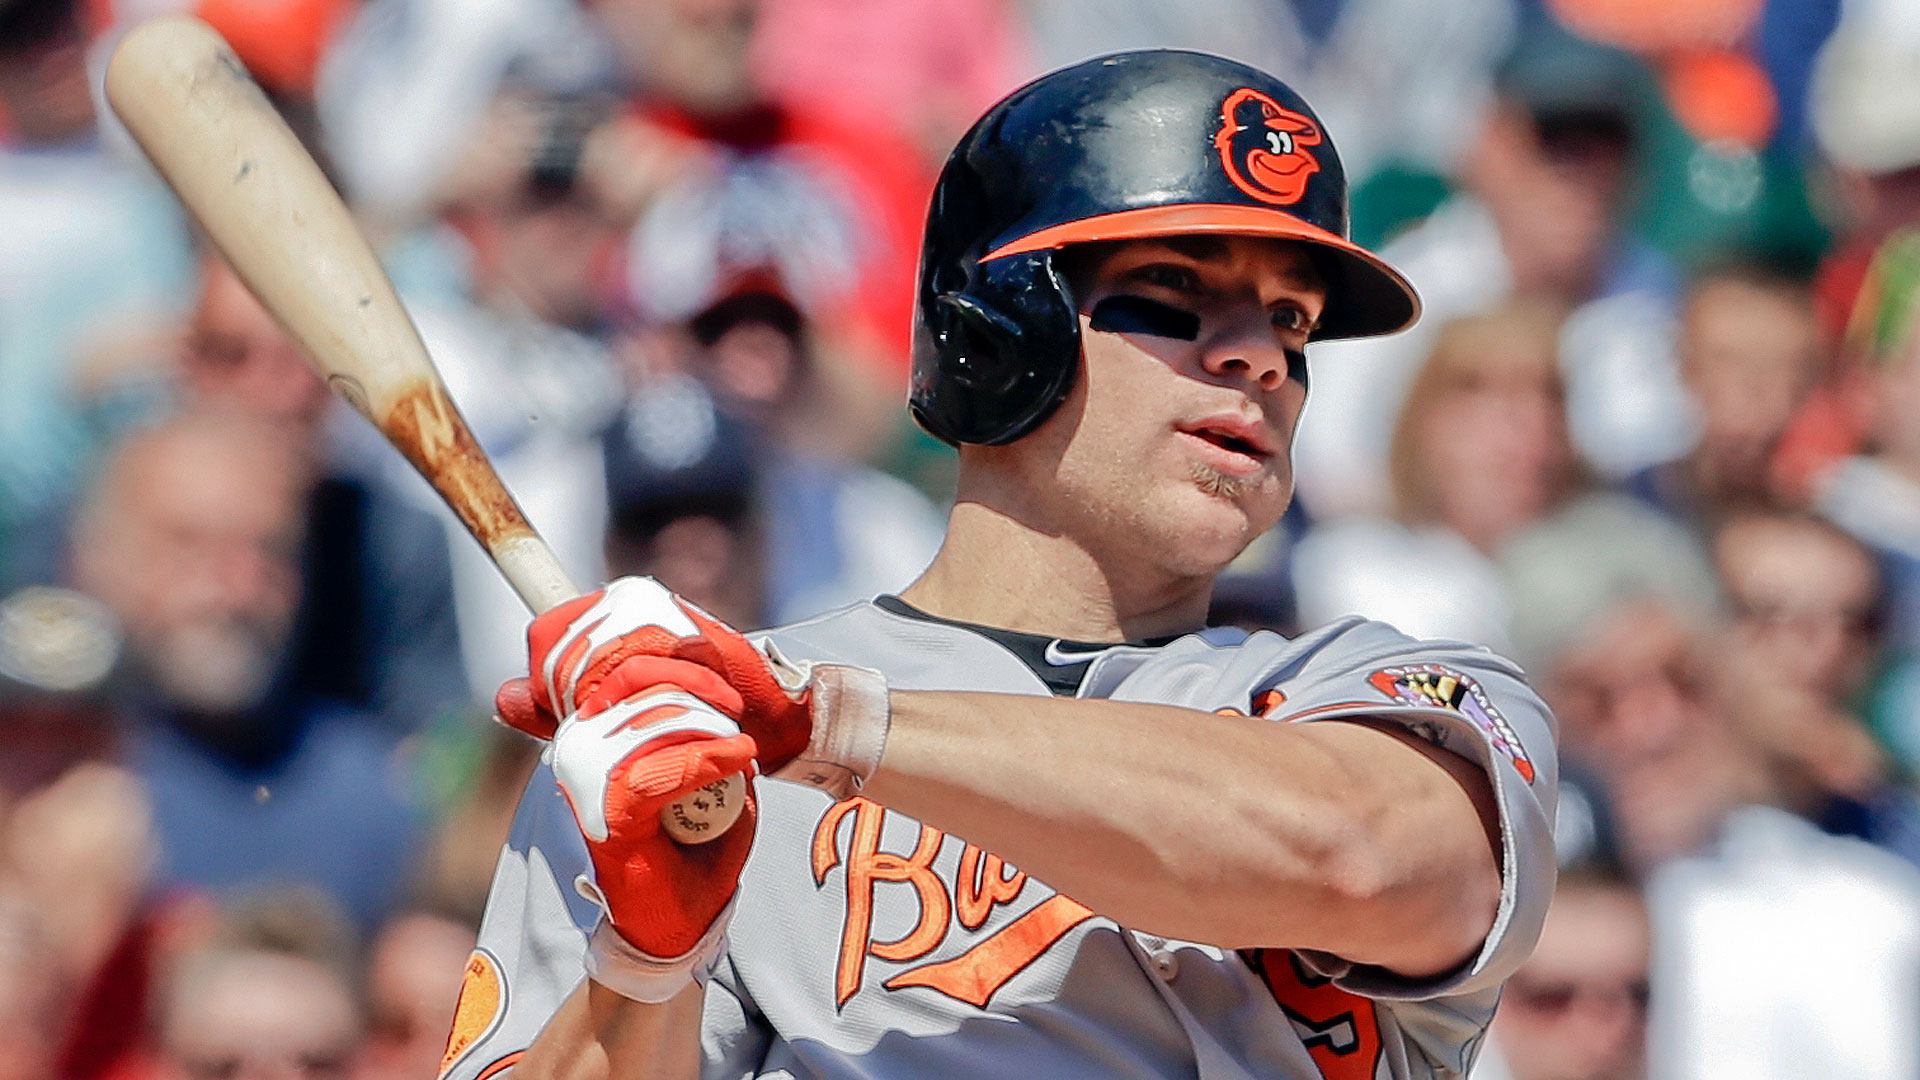 Baltimore Orioles 2014 fantasy baseball team preview